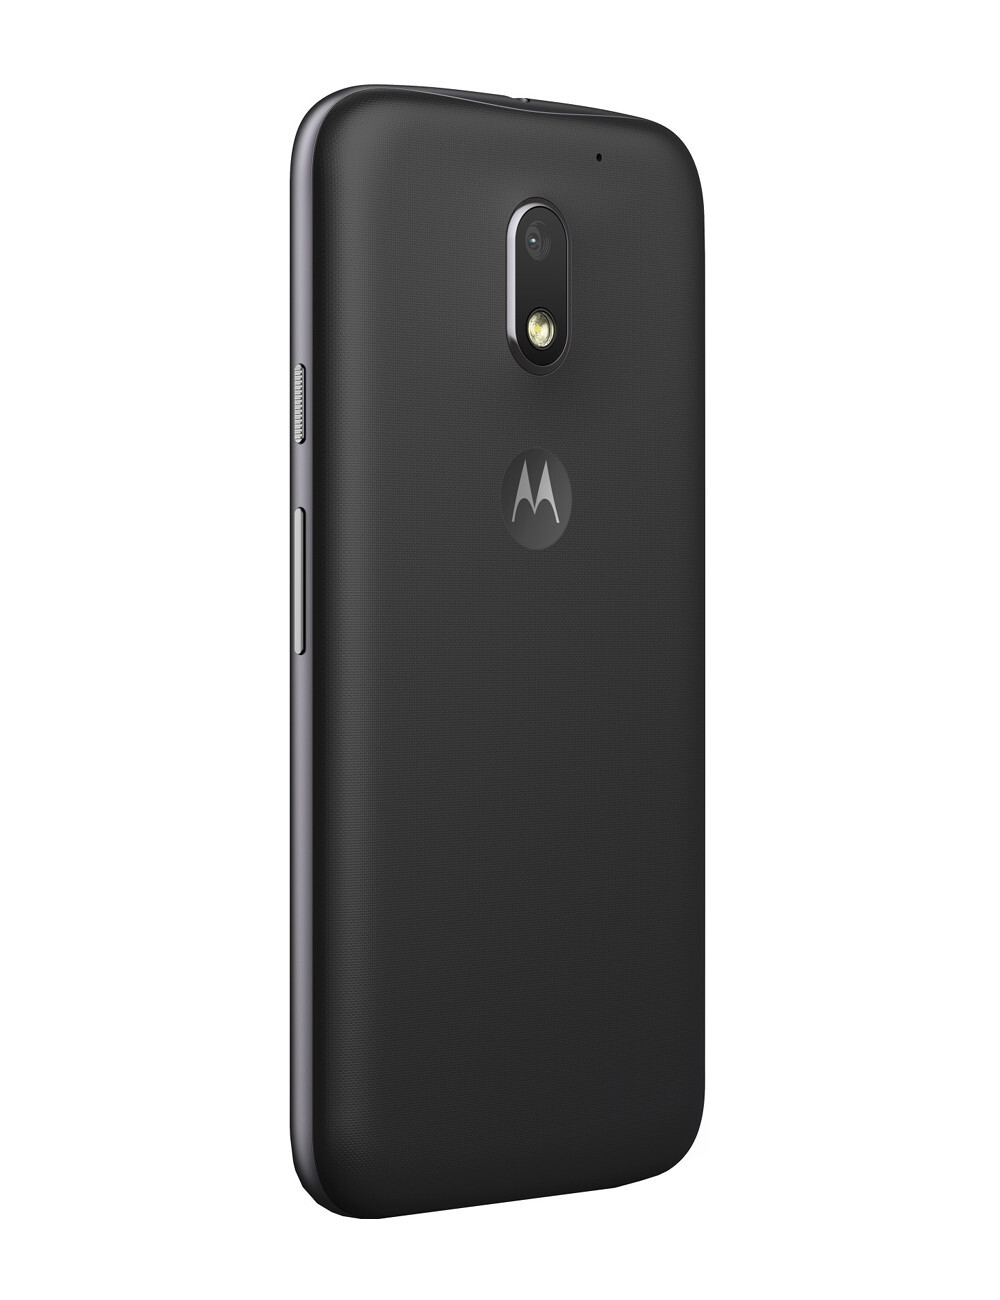 Moto E3 Power, 3,500 MAh Battery for The Little Motorola